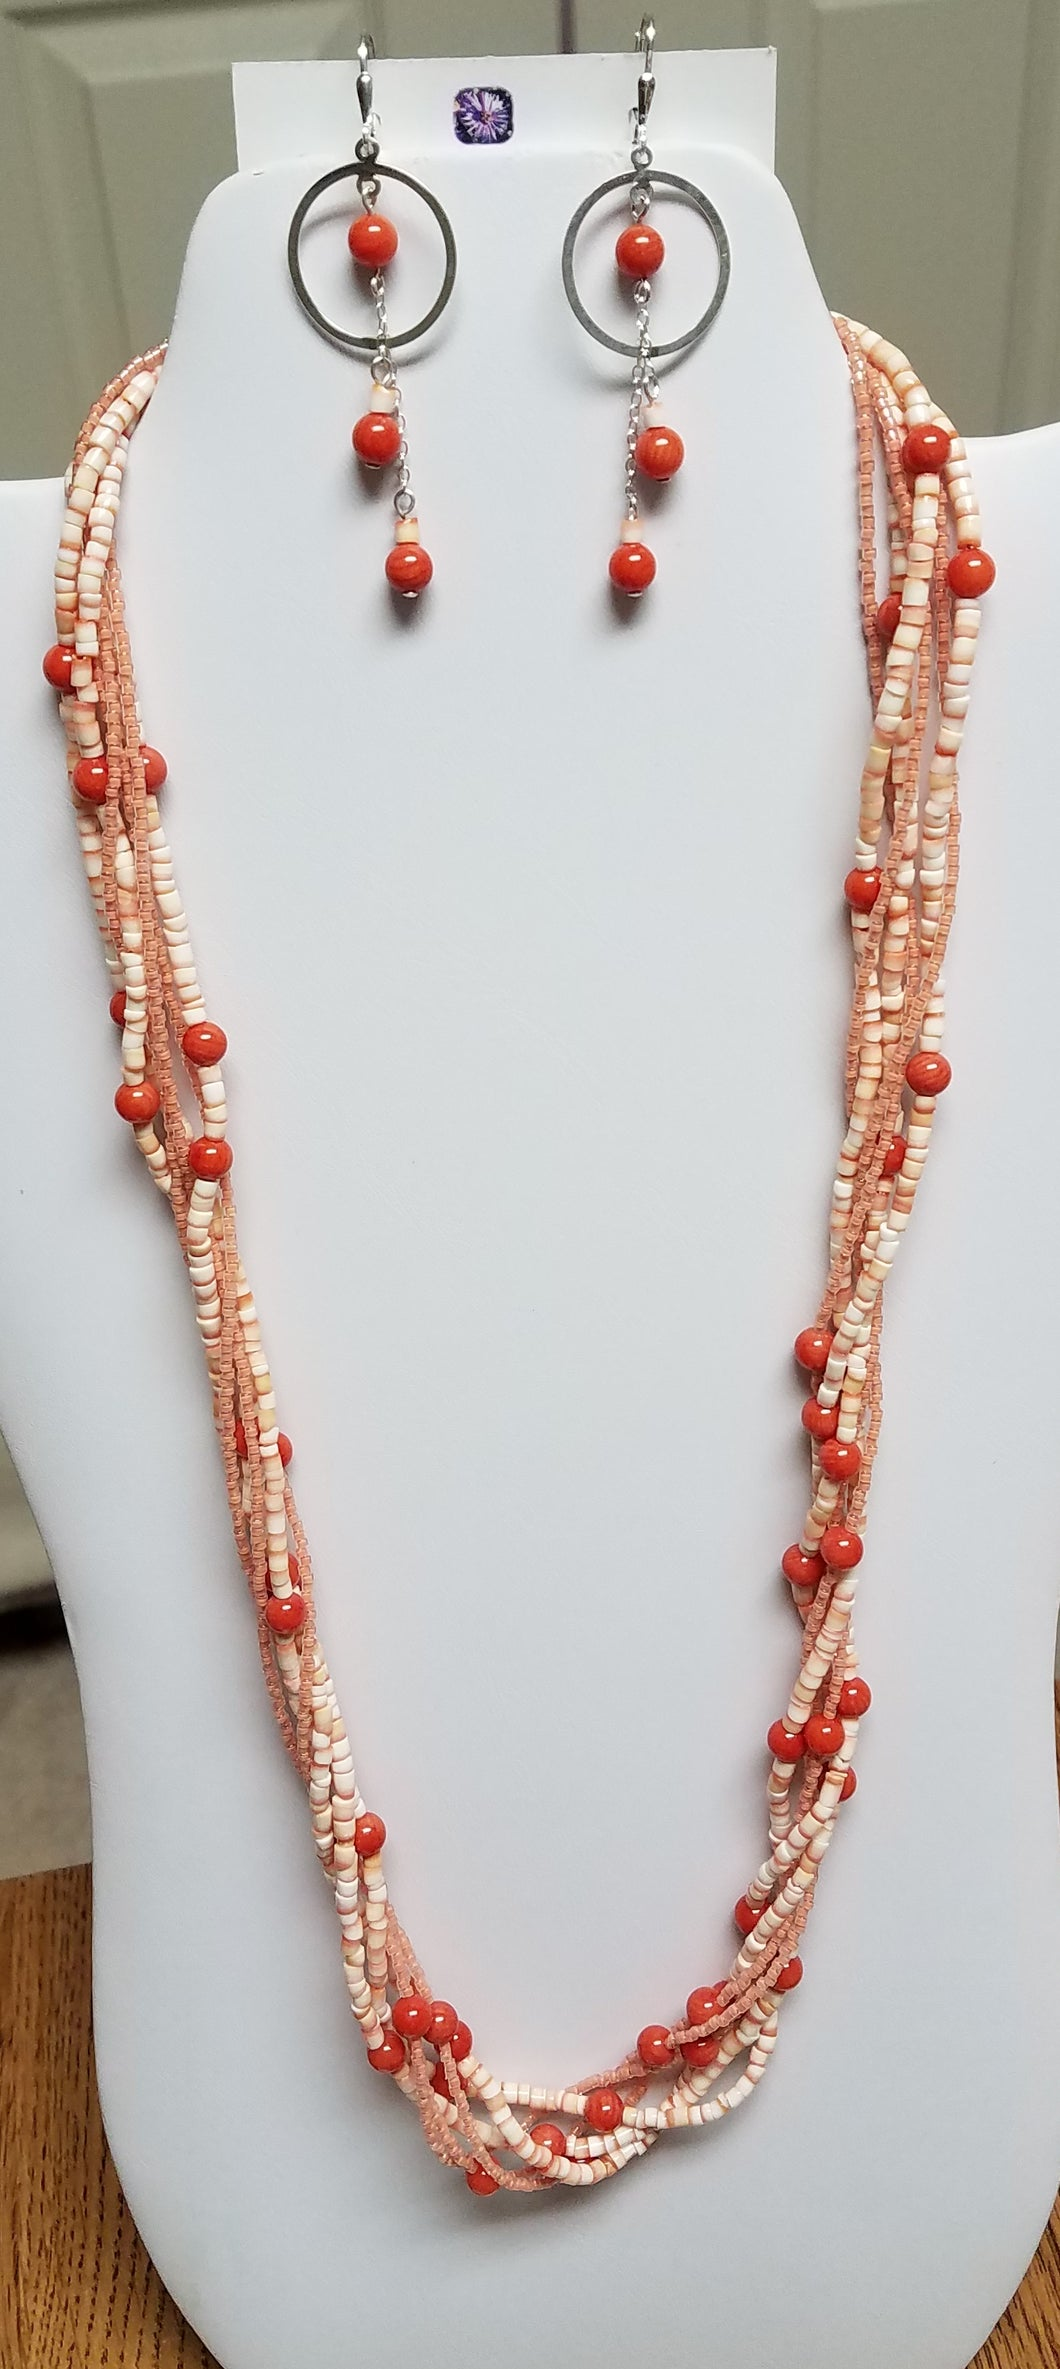 Twisted-Coral-Redlip-Shell-Heishi-Miyuki-Delica-Sterling-Silver-Necklace-Earrings